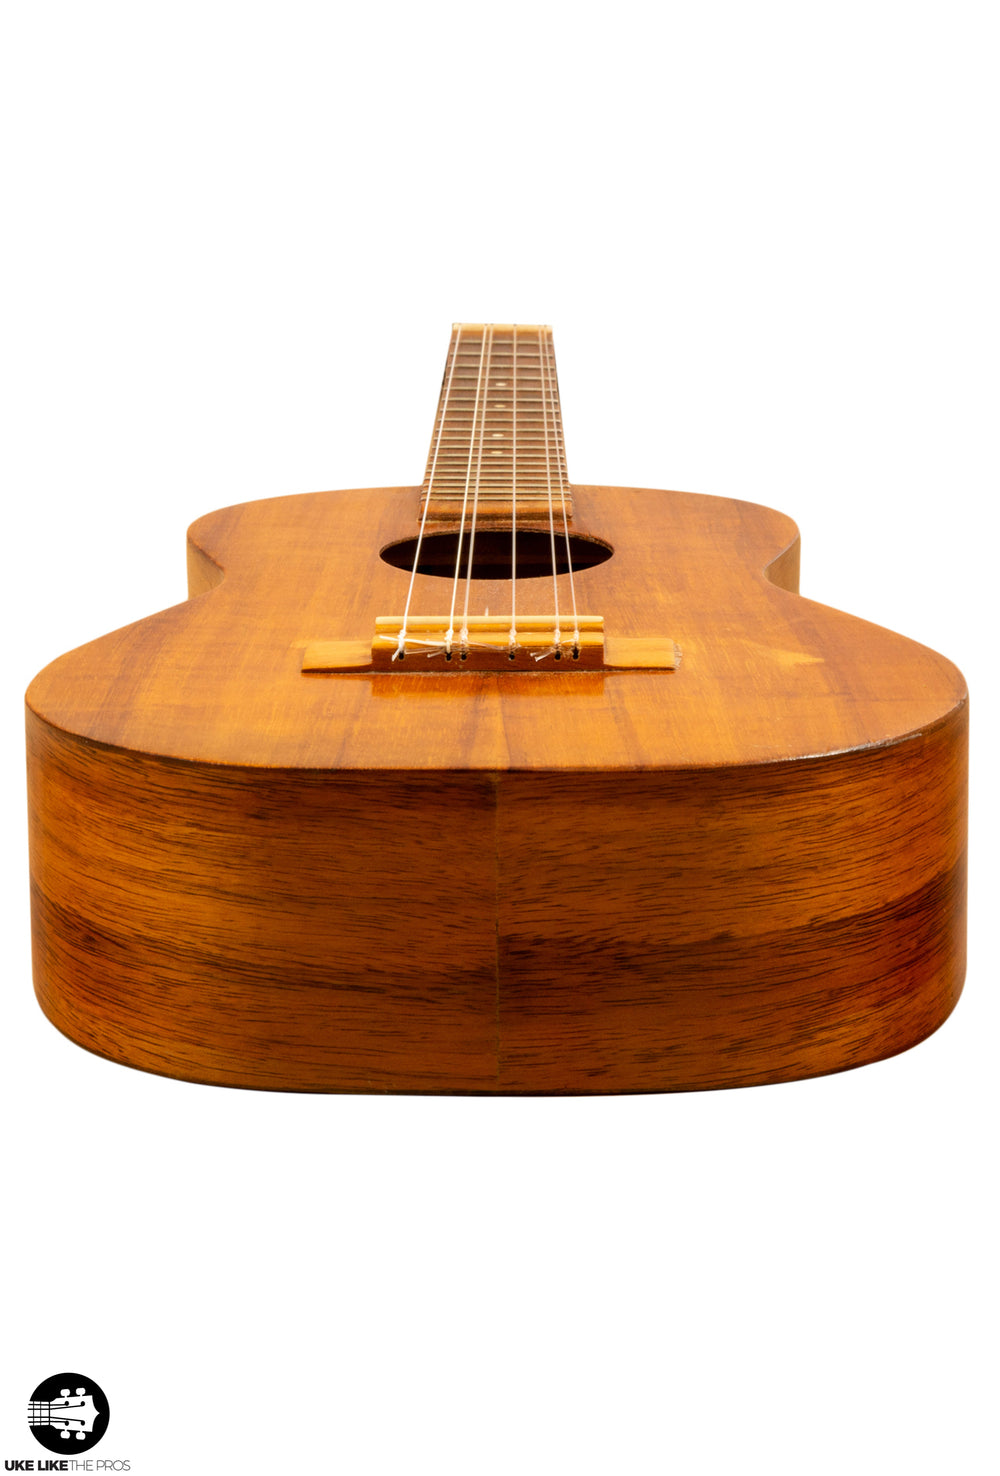 "Kamaka Vintage 1972 Tenor 6 String Ukulele Koa ""Tikki"" For Charity"